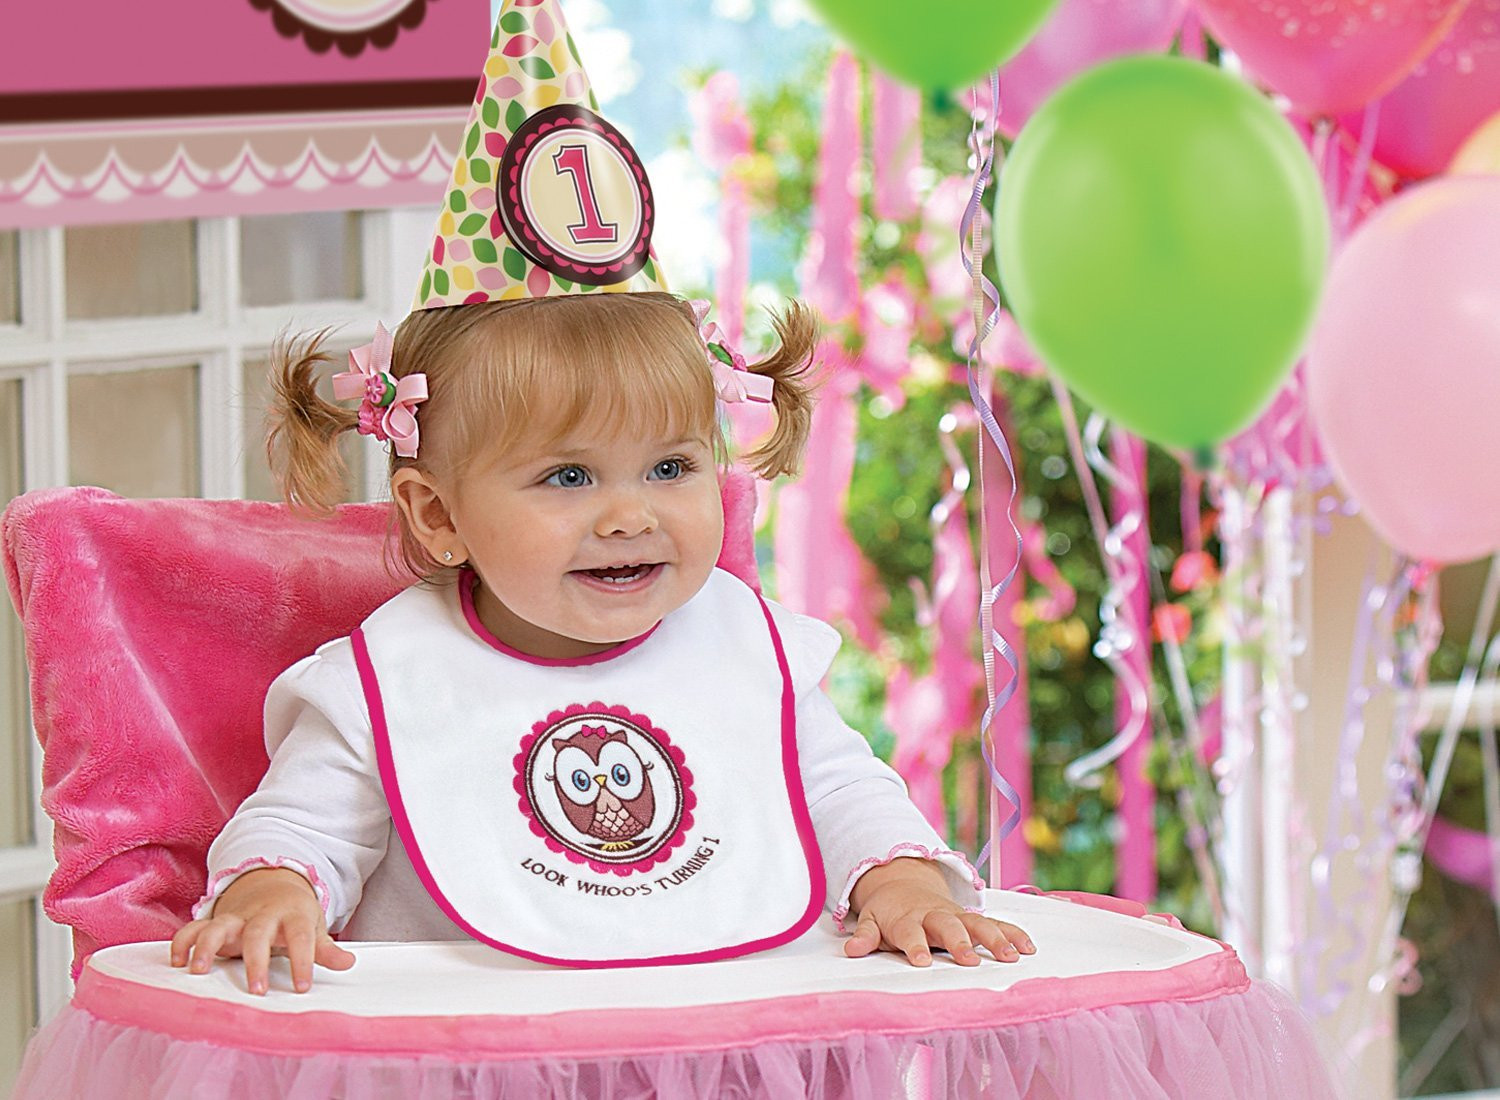 Best ideas about Baby Girls First Birthday Decorations . Save or Pin 22 Fun Ideas For Your Baby Girl s First Birthday Shoot Now.